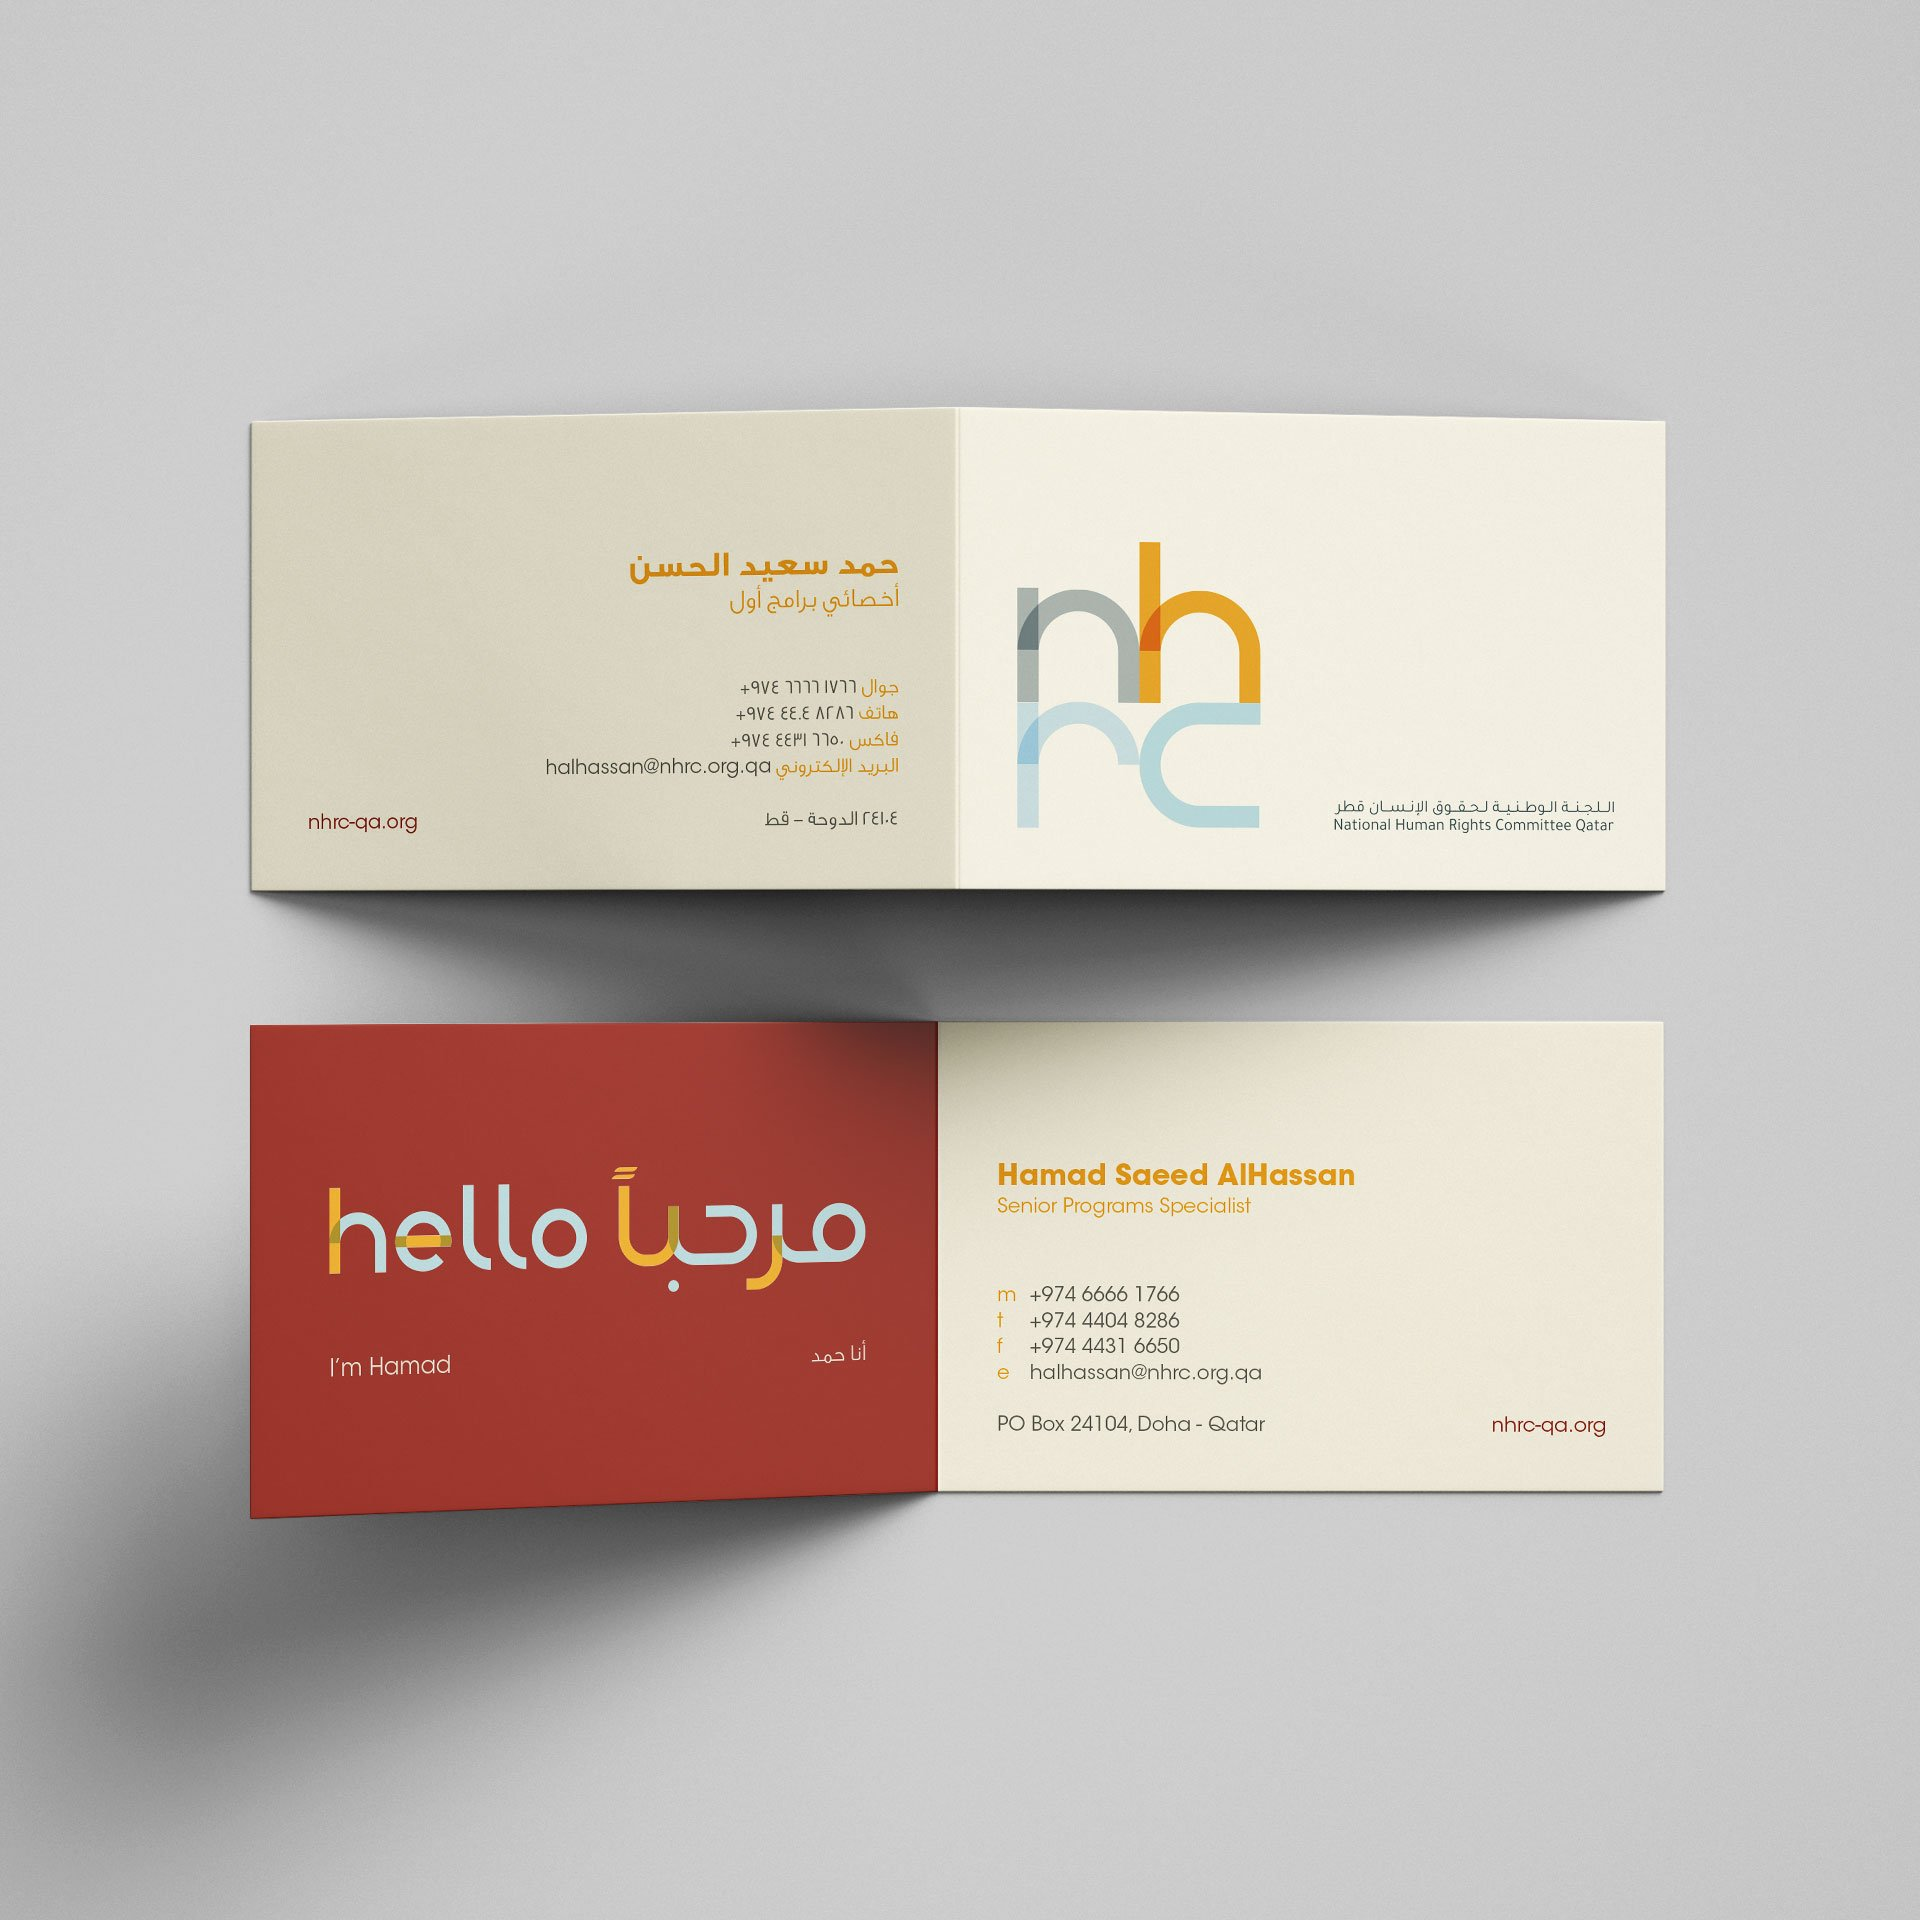 Human Rights Brand Strategy And Identity Design